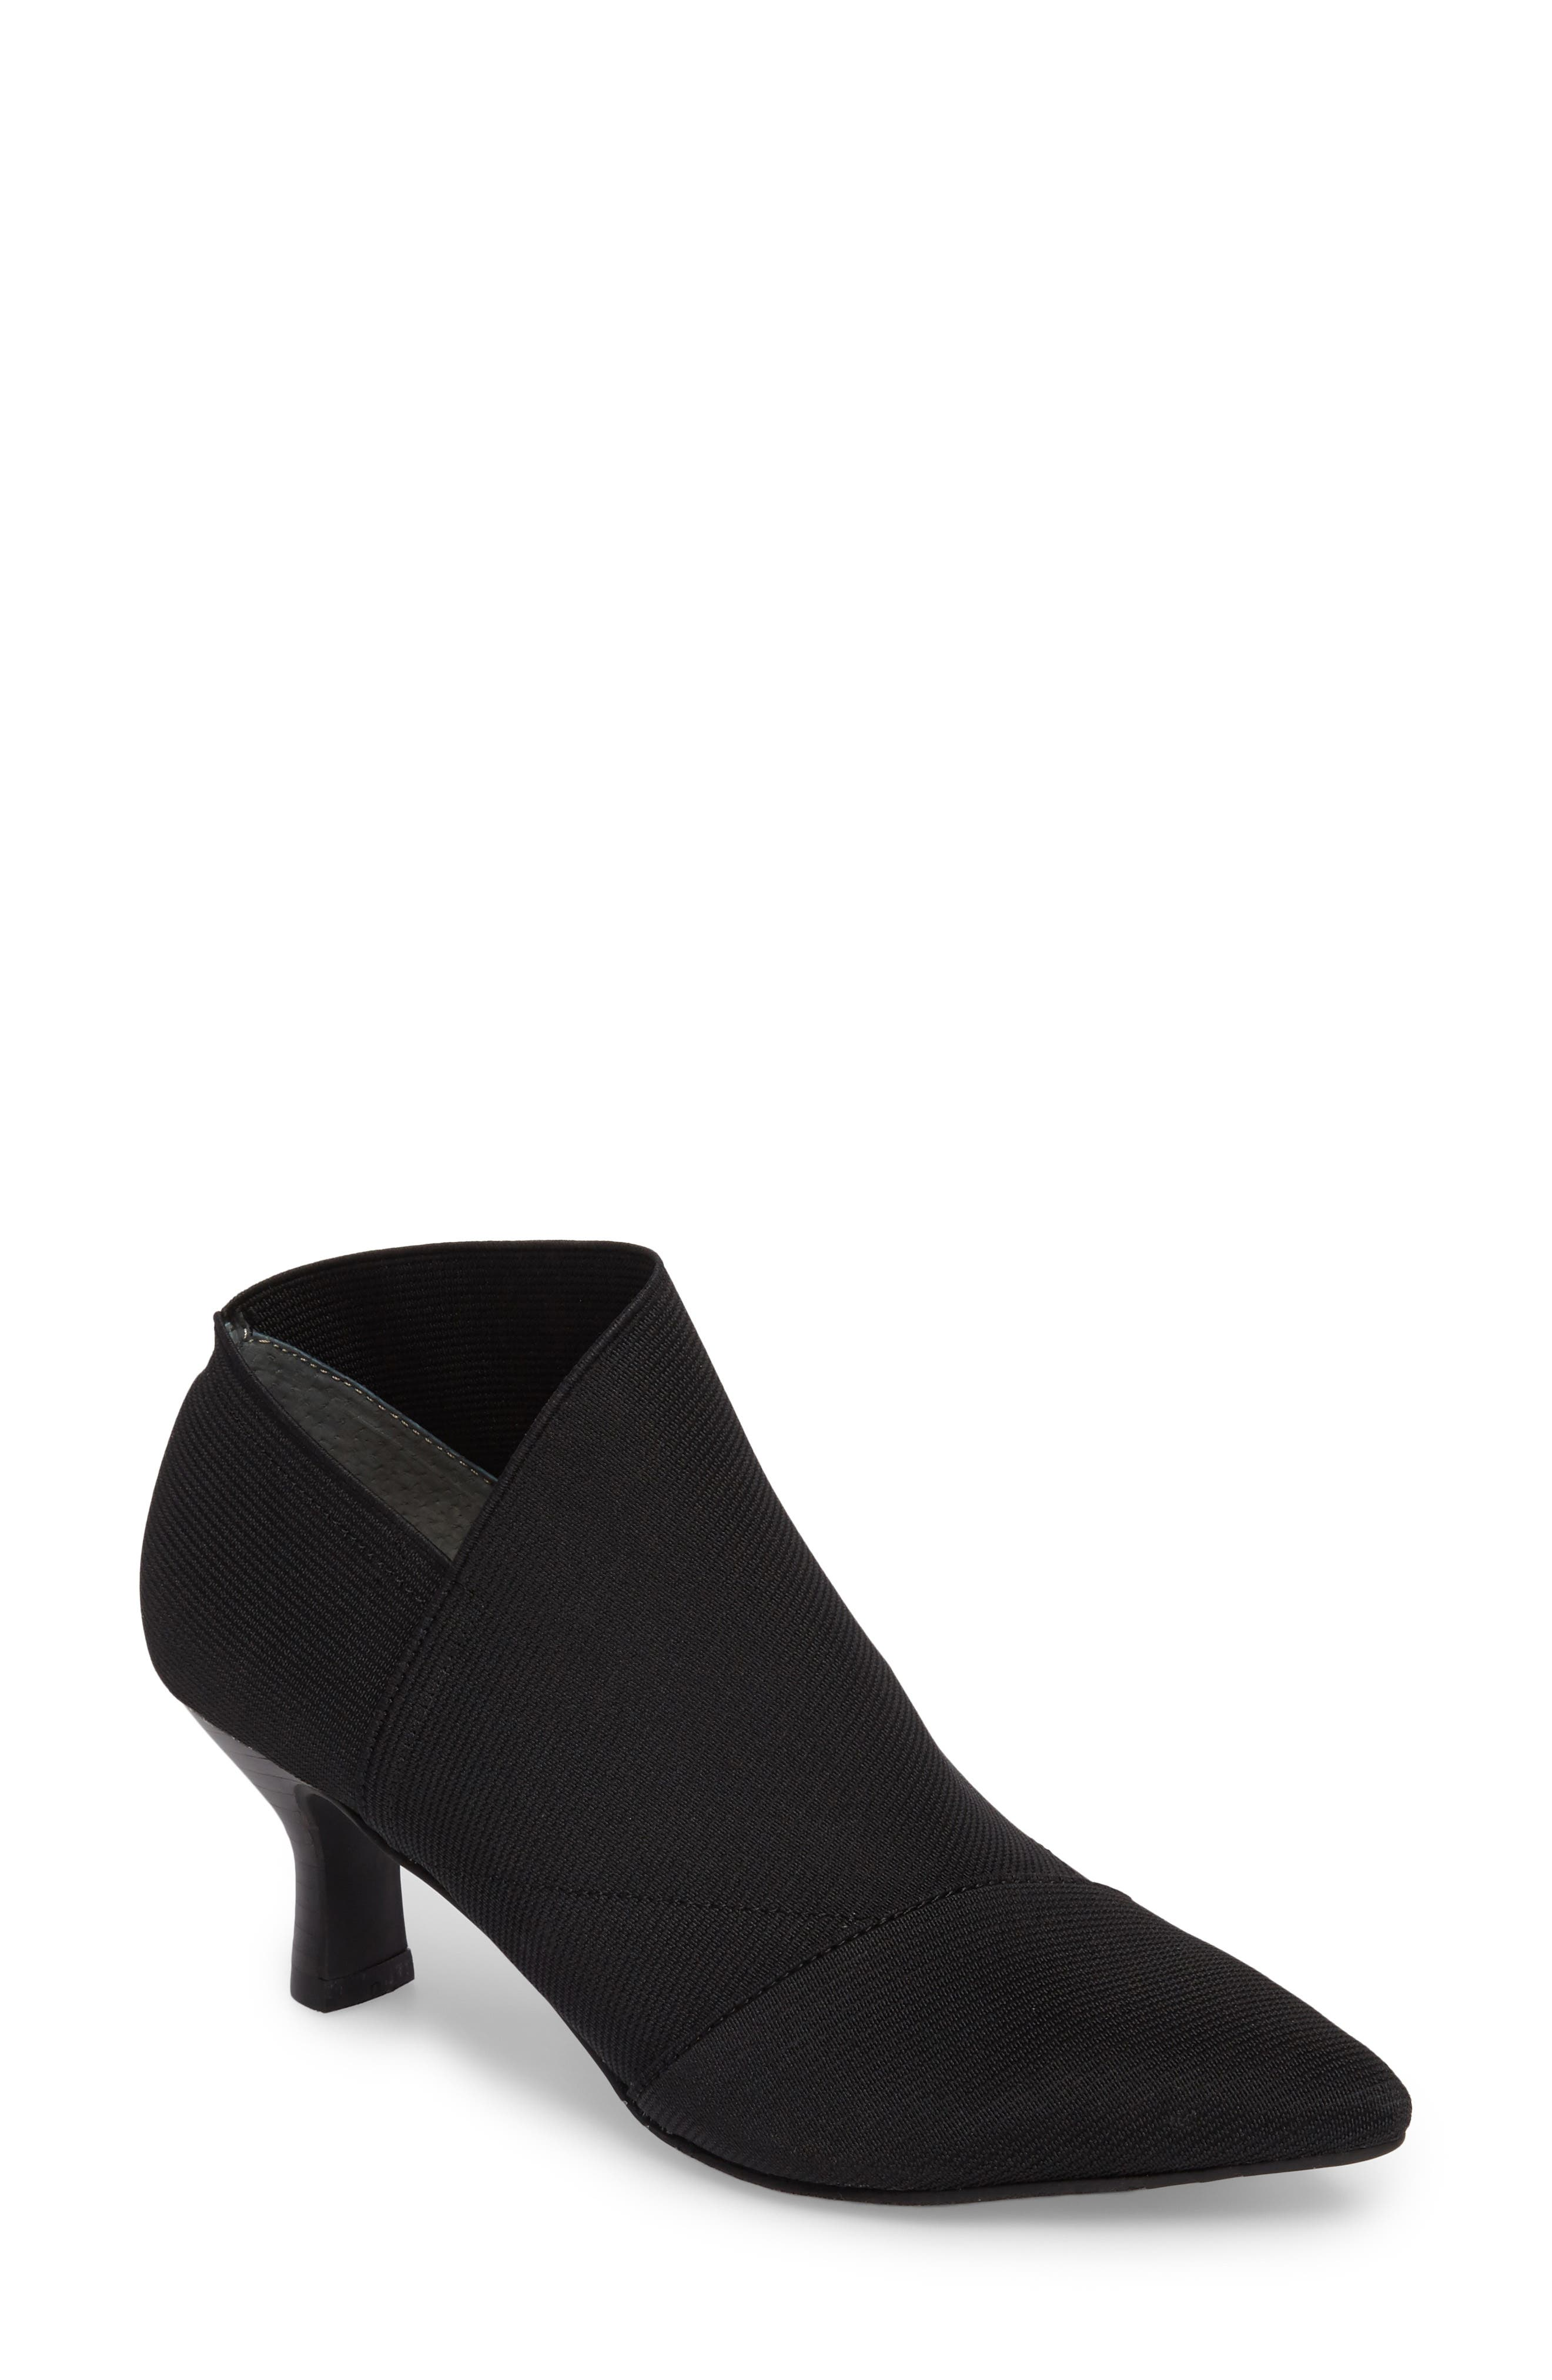 Adrianna Papell Hayes Pointy Toe Bootie, Black